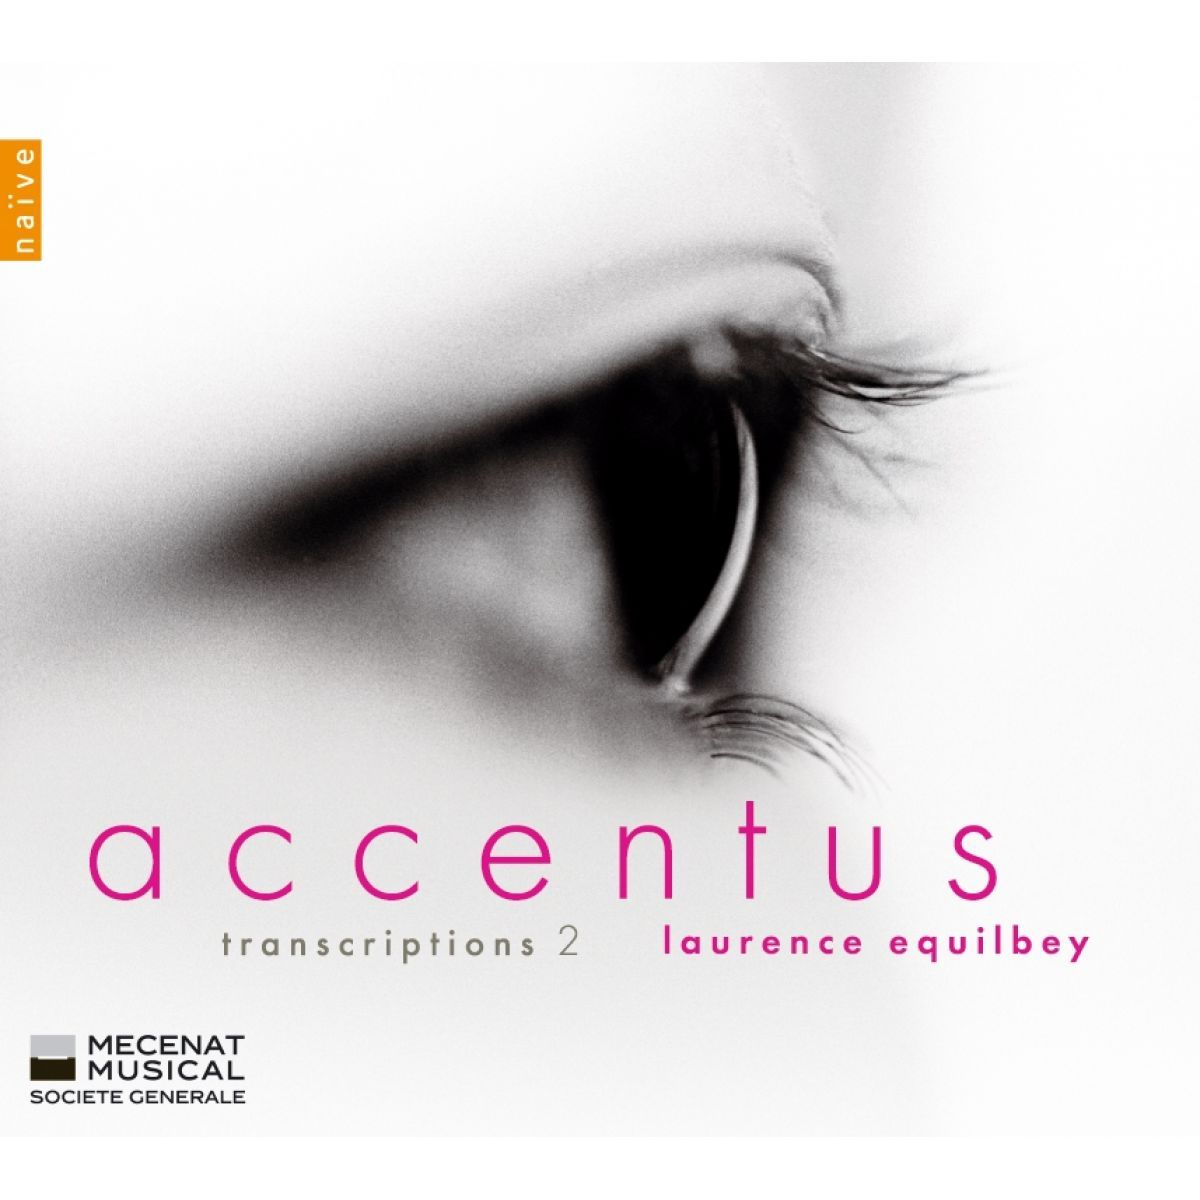 Accentus transcription canada